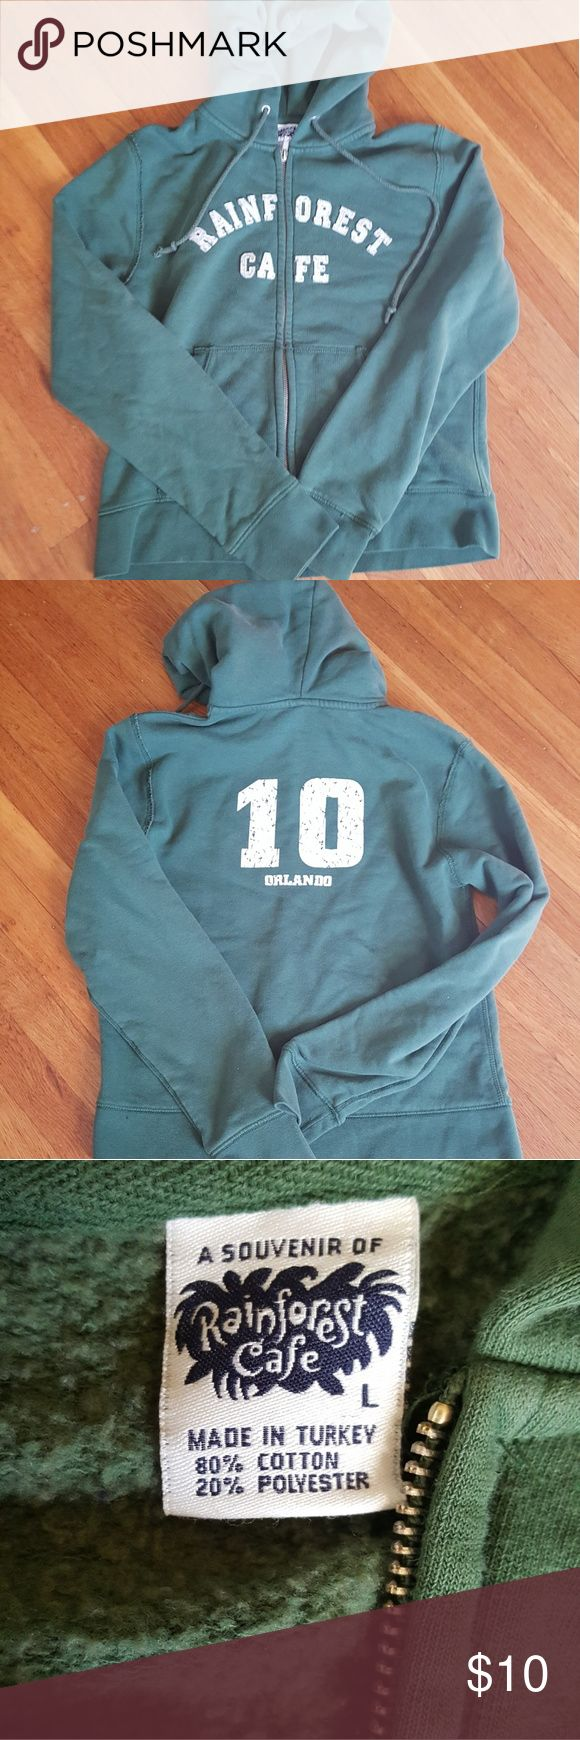 Orlando Rainforest Cafe Green Hoodie Size Large Rainforest Cafe Orlando green hoodie in a size Large.  Worn a couple of times.  Really comfy! Rainforest Cafe Tops Sweatshirts & Hoodies